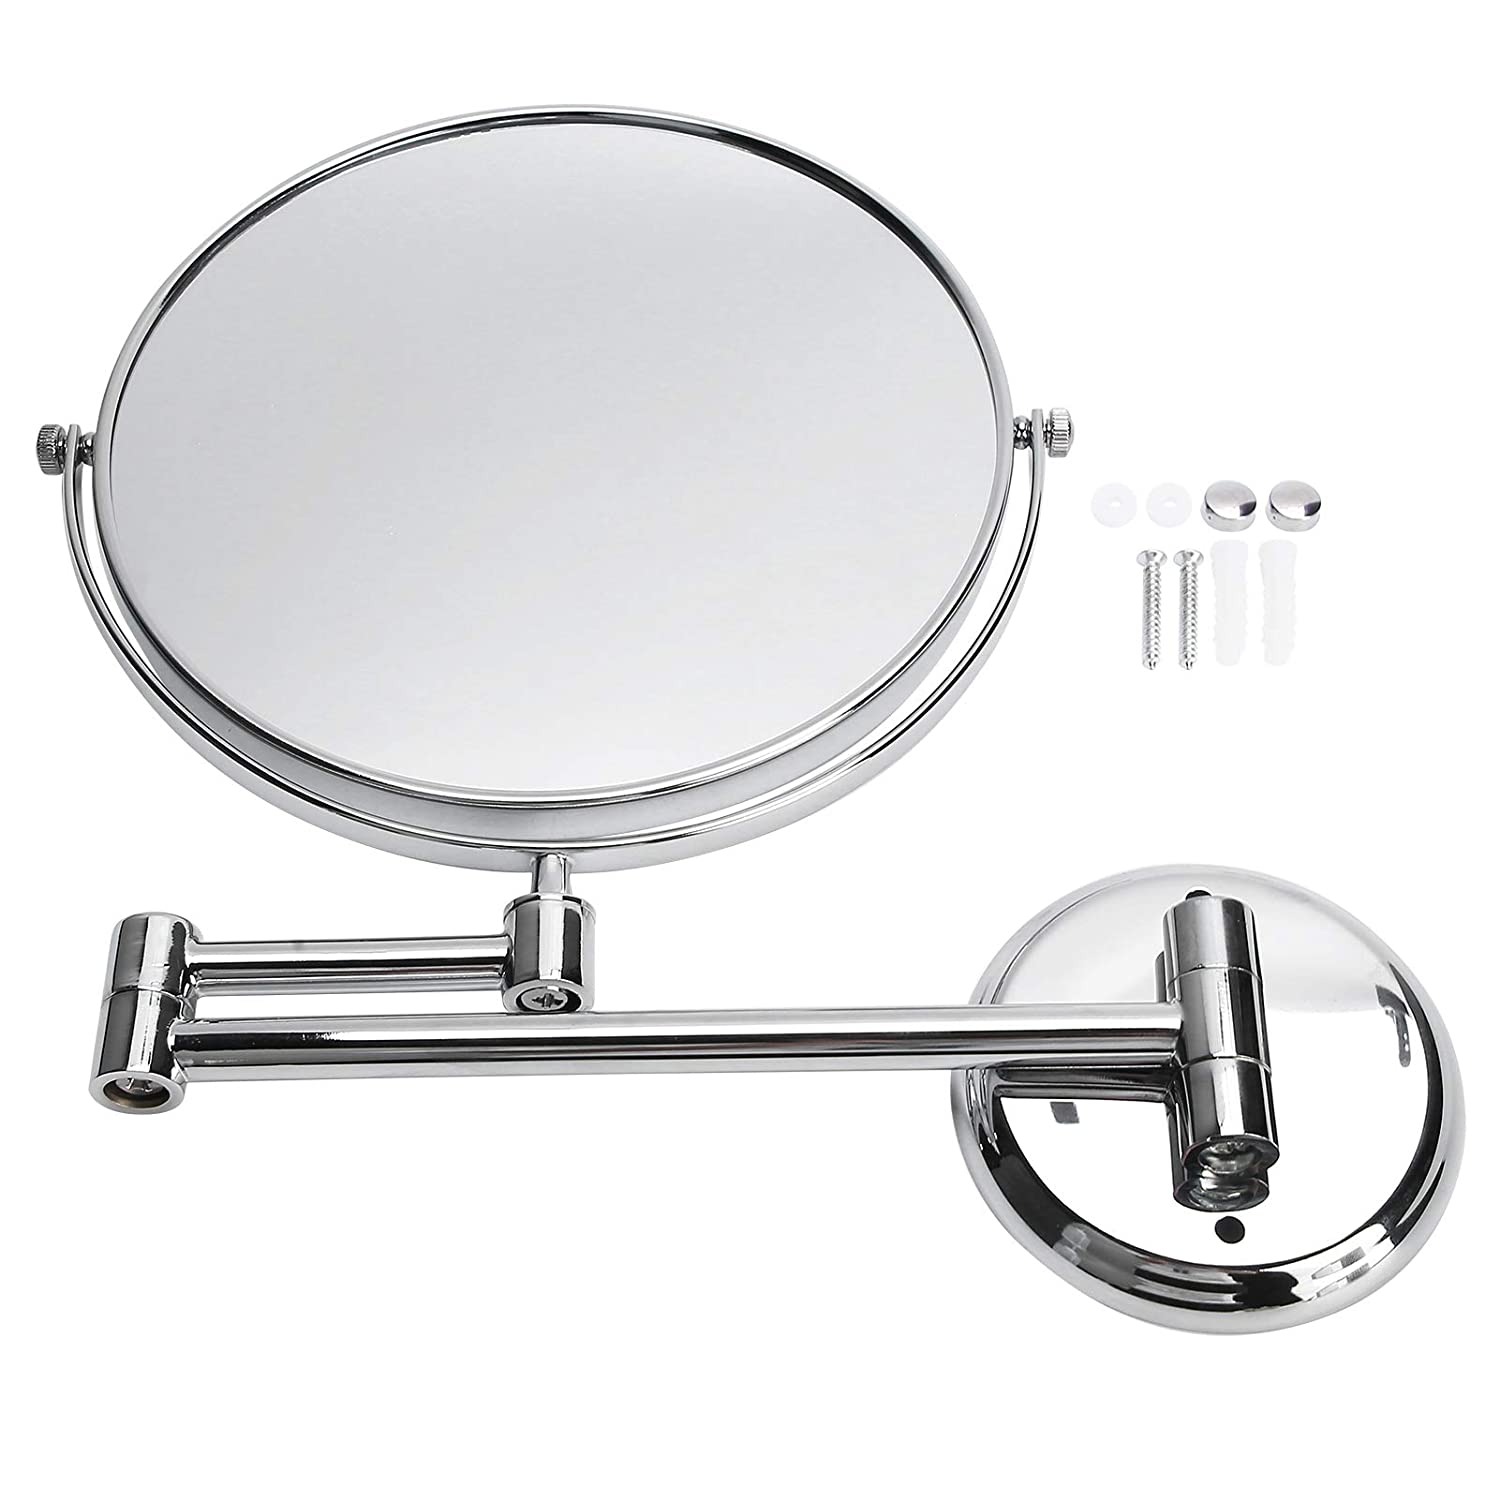 Cosmetic Mirror Low Popular brand in the world price Folding Copper Electroplating